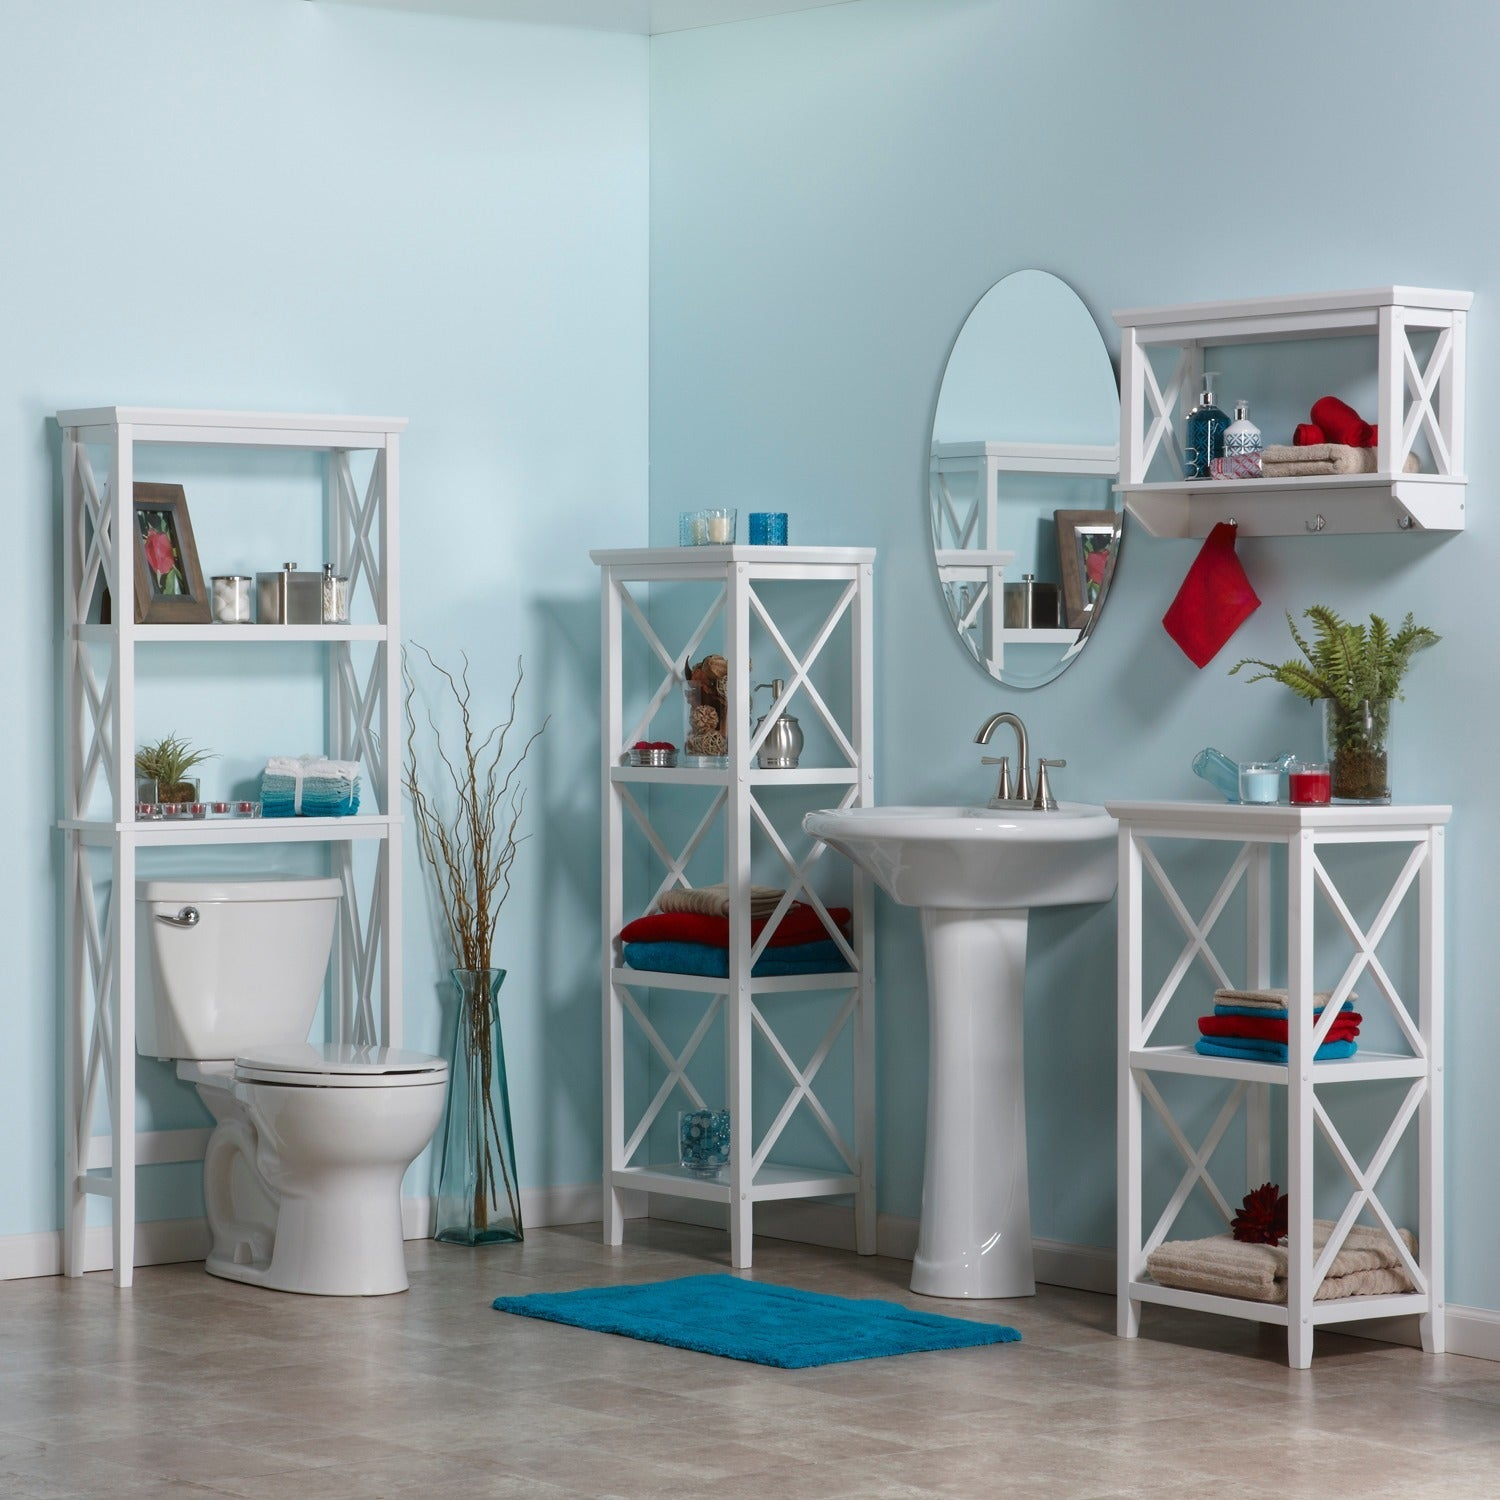 Shop RiverRidge Home X-frame Bathroom Wall Shelf - Free Shipping ...